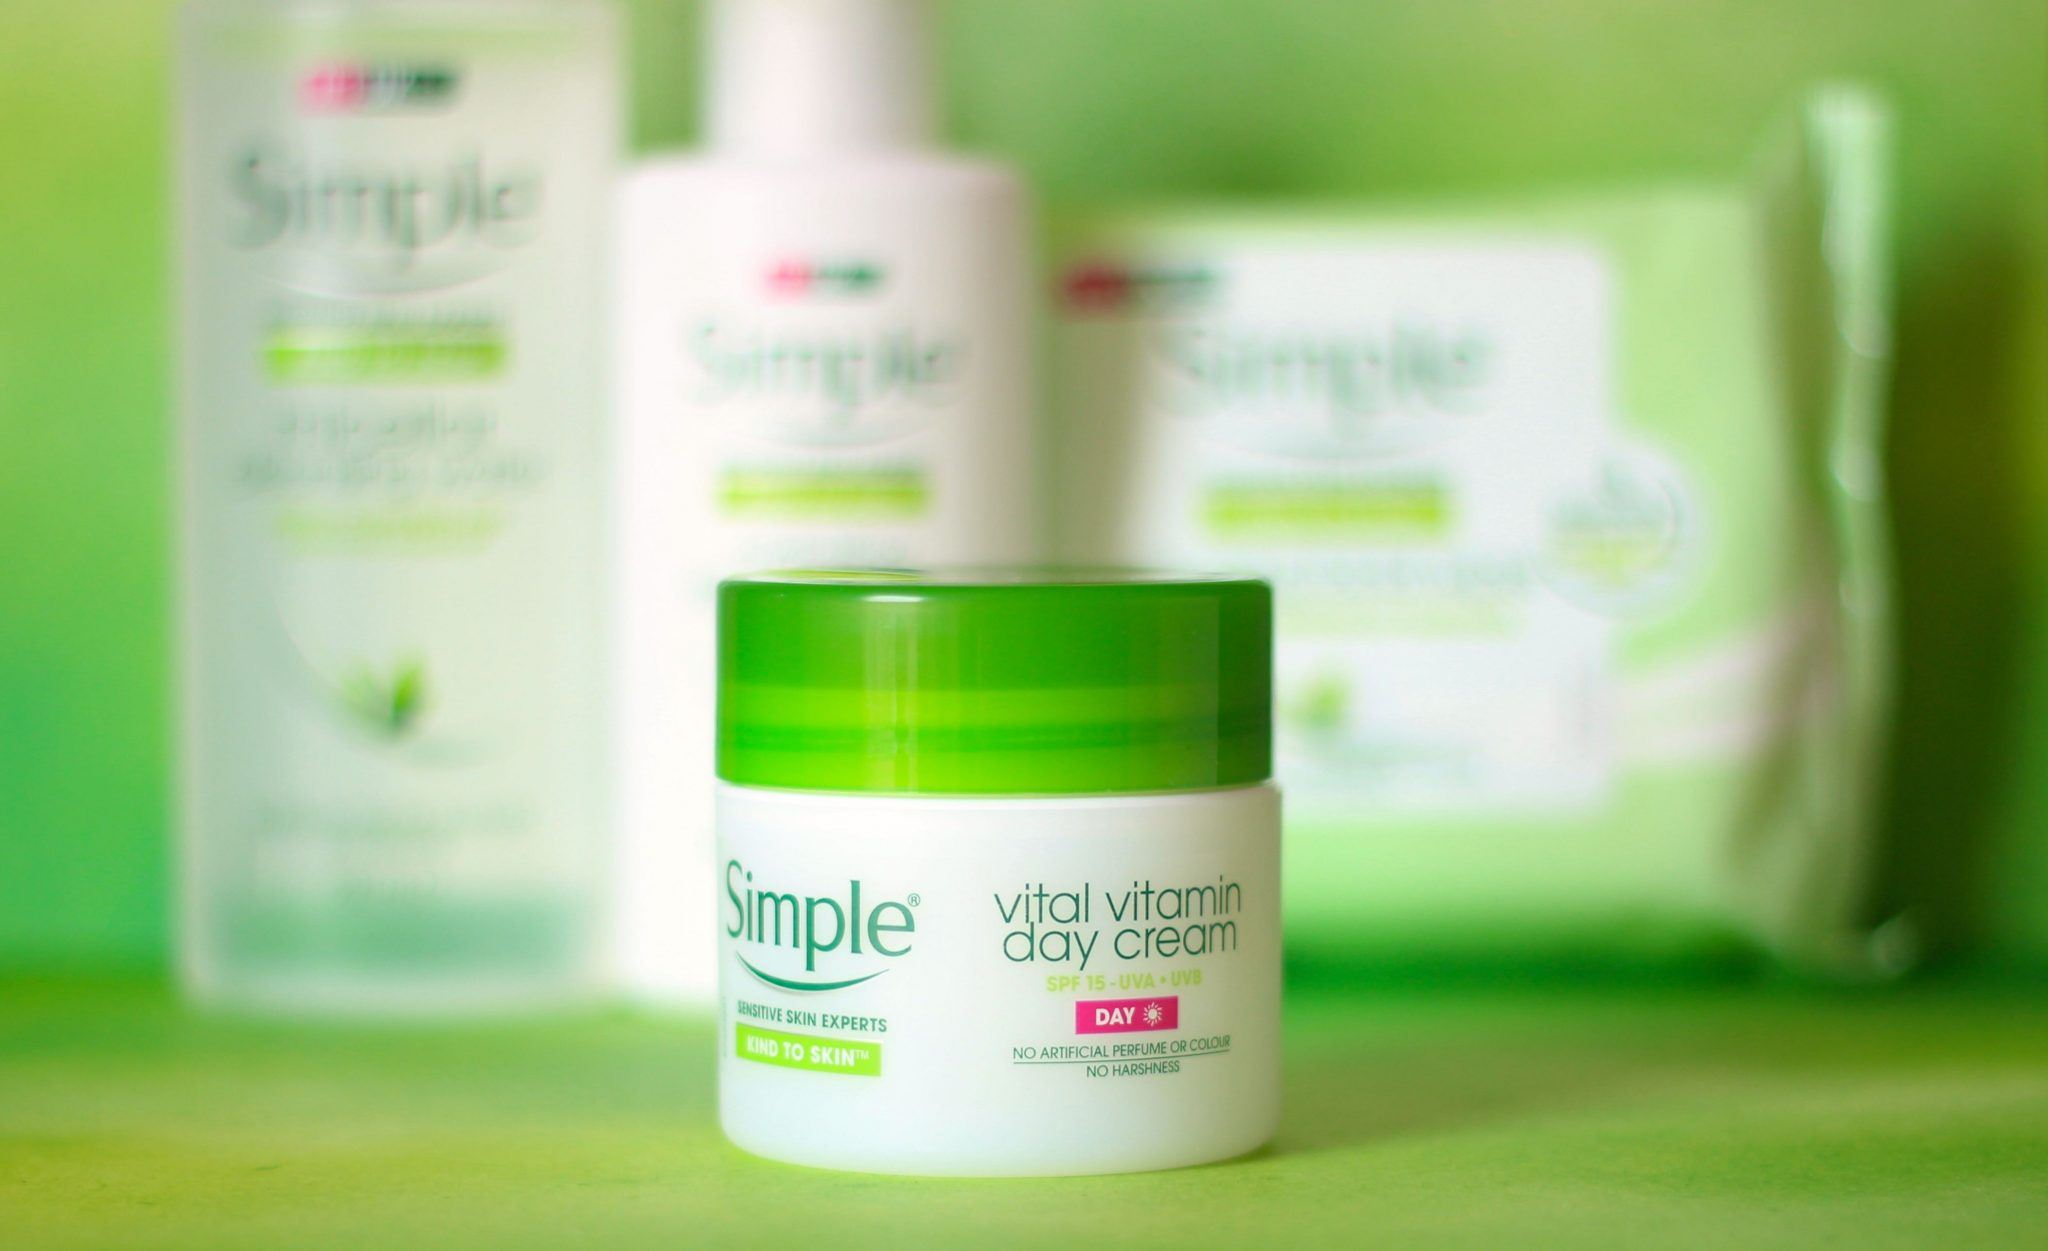 Simple Vital Vitamin Day Cream